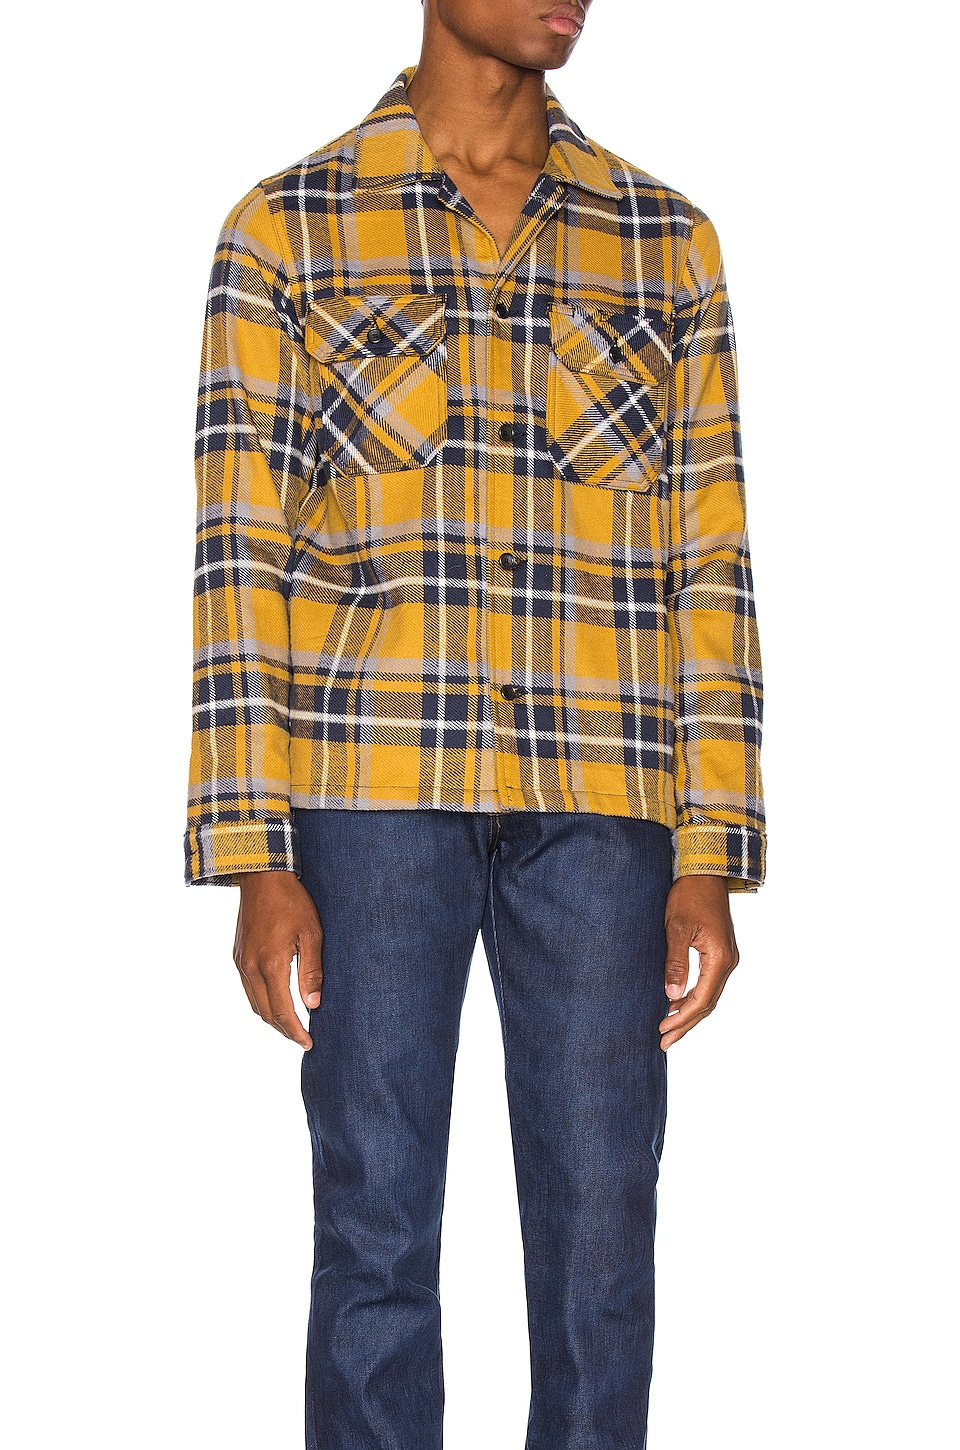 Naked & Famous Denim Work Shirt in Yellow & Blue Flannel